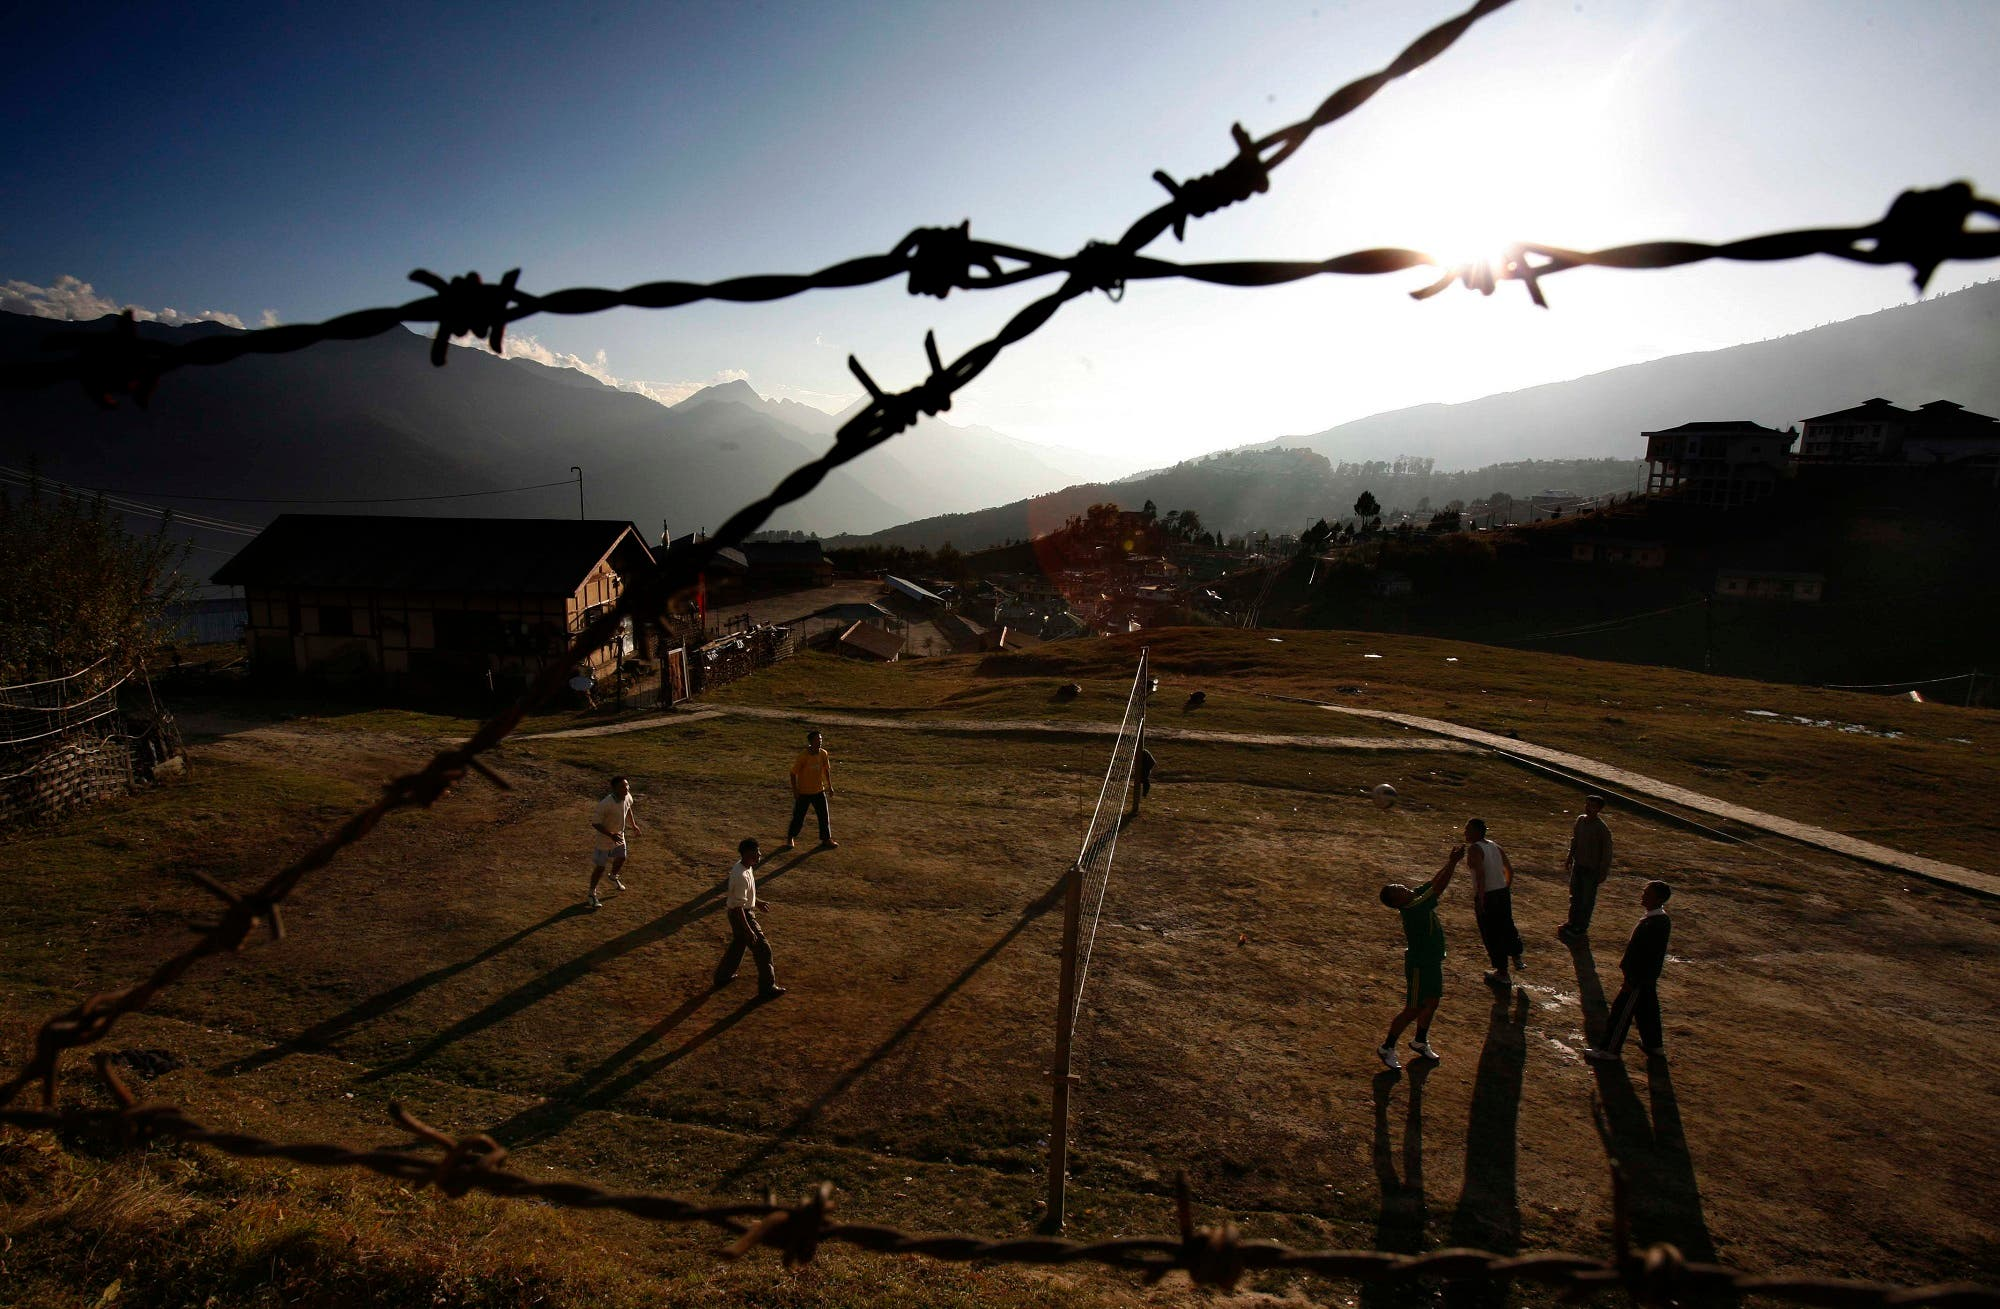 Policemen play volleyball in Tawang, in the northeastern Indian state of Arunachal Pradesh, Nov. 5, 2009. The Indian government refused Thursday to allow foreign journalists to cover the visit of the Tibetan spiritual leader Dalai Lama to the northeastern state at the heart of a long-running border dispute with China. (AP)